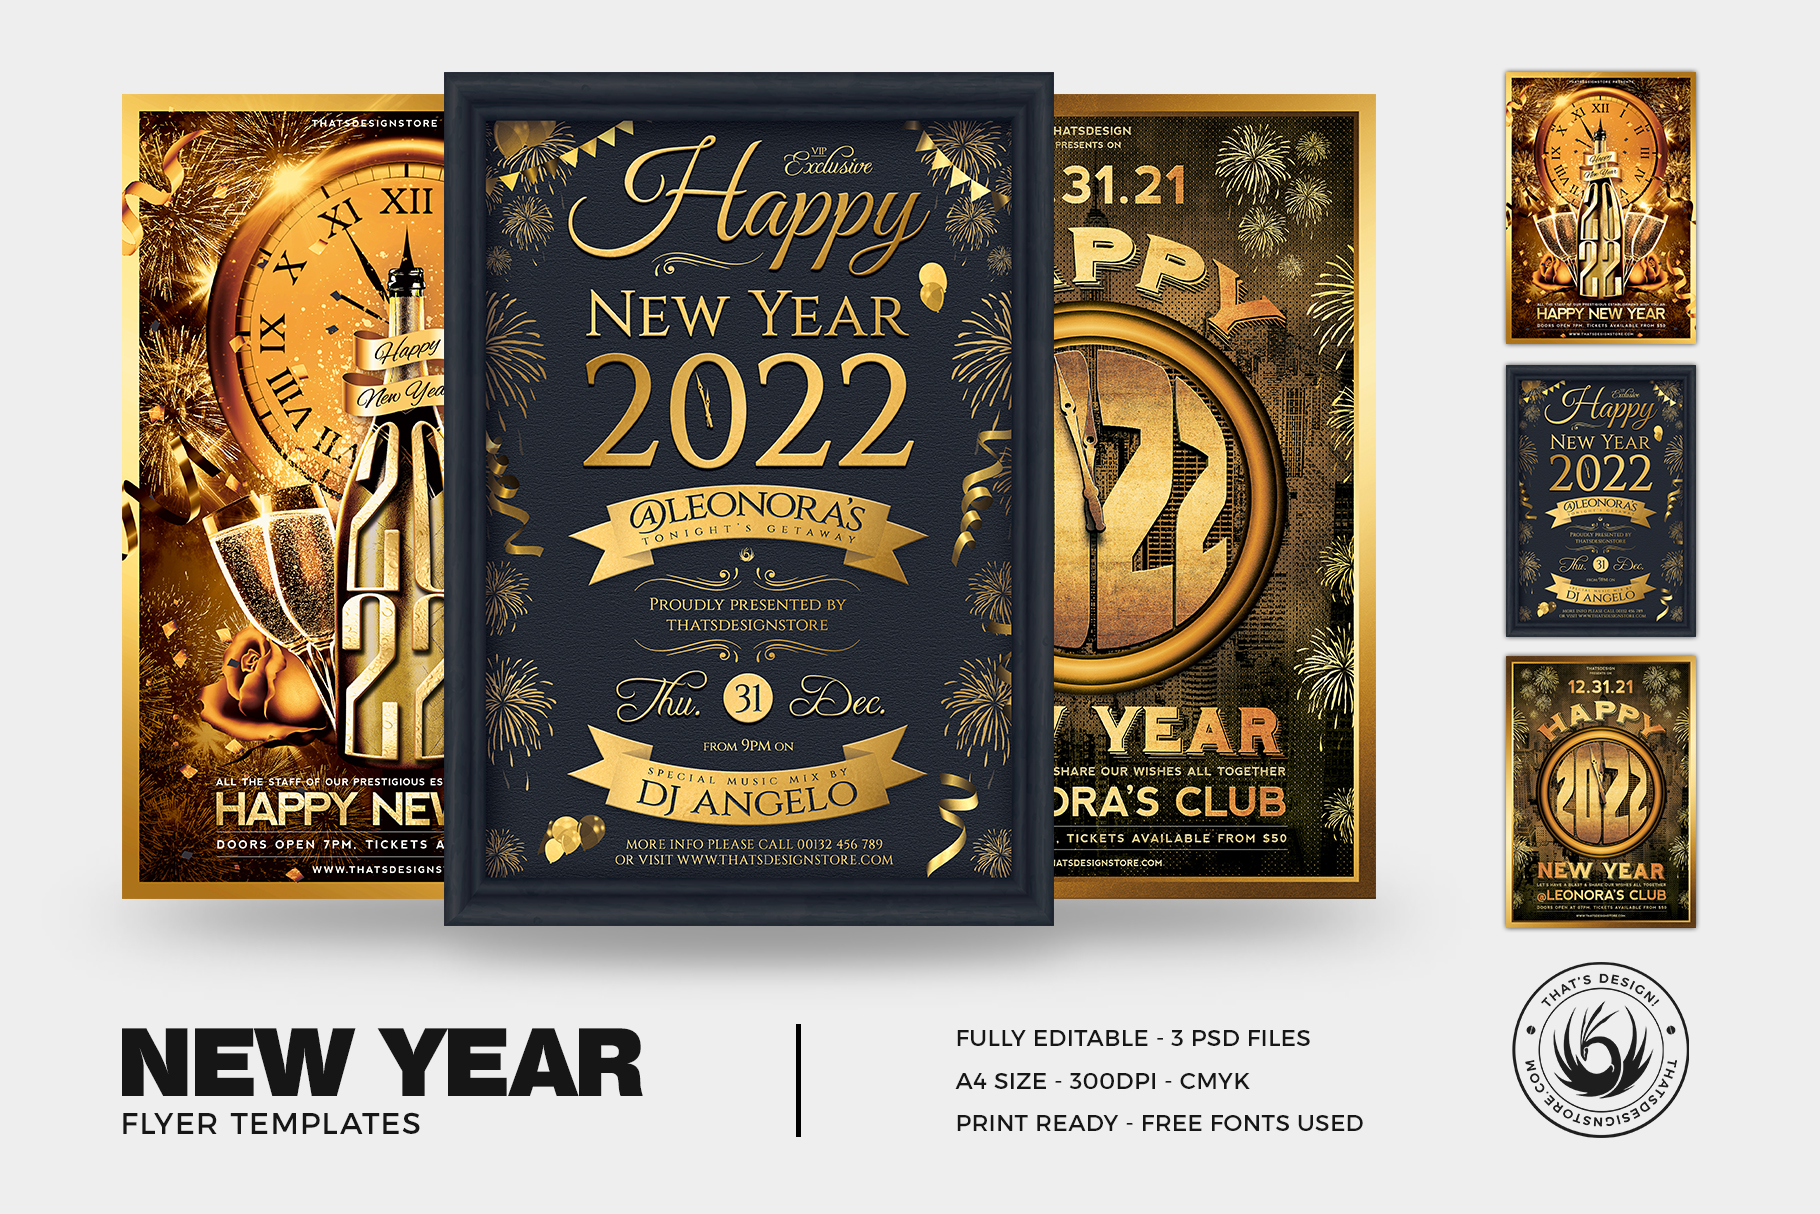 New year eve flyer templates psd bundle